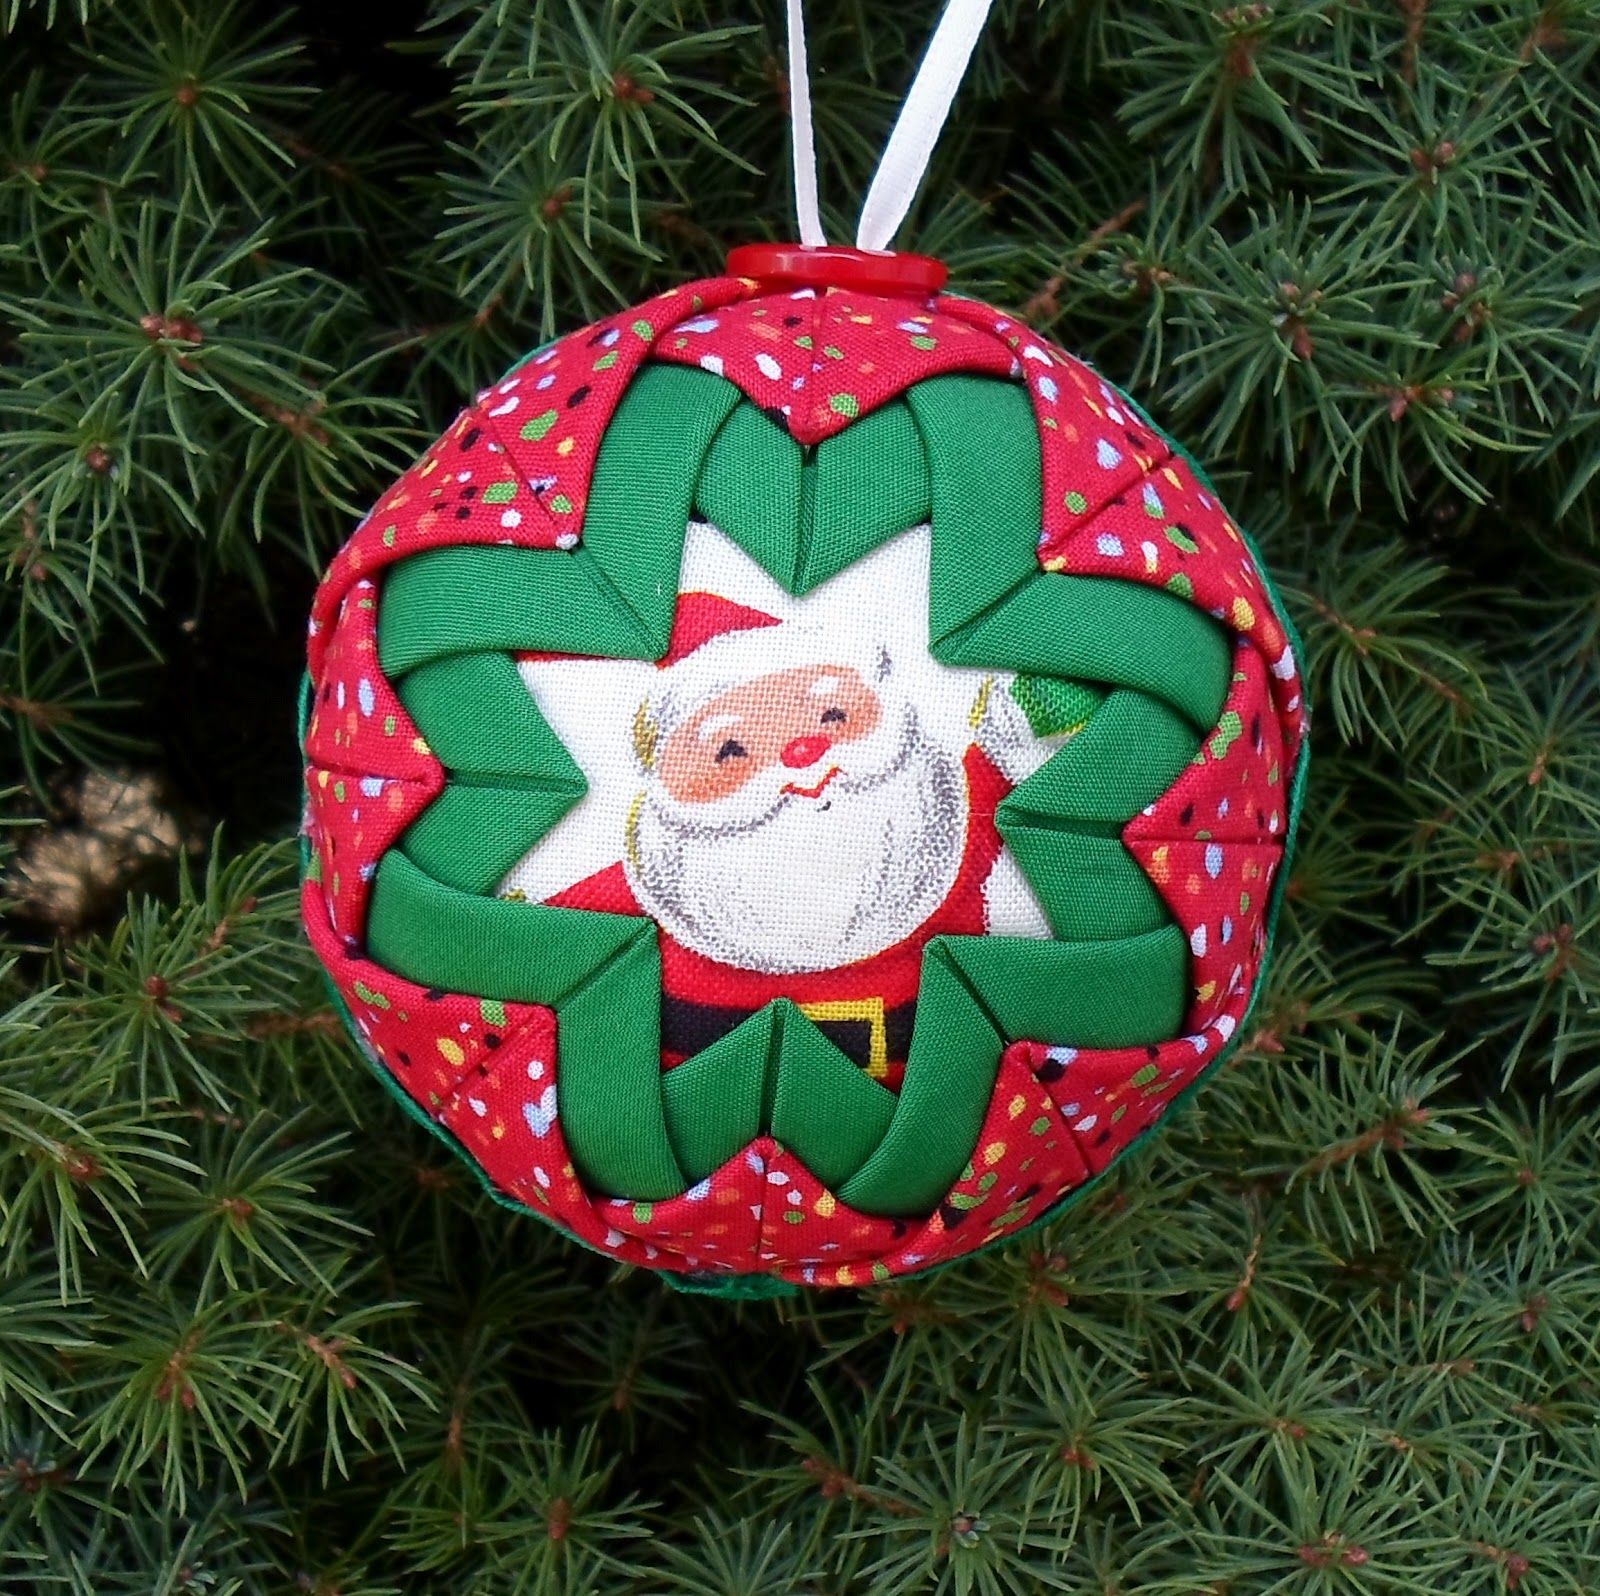 Folded fabric christmas ornaments patterns - Free Folded Star Ornament Pattern Quilted Christmas Ball Ornament Directions Http Happierthanapiginmud